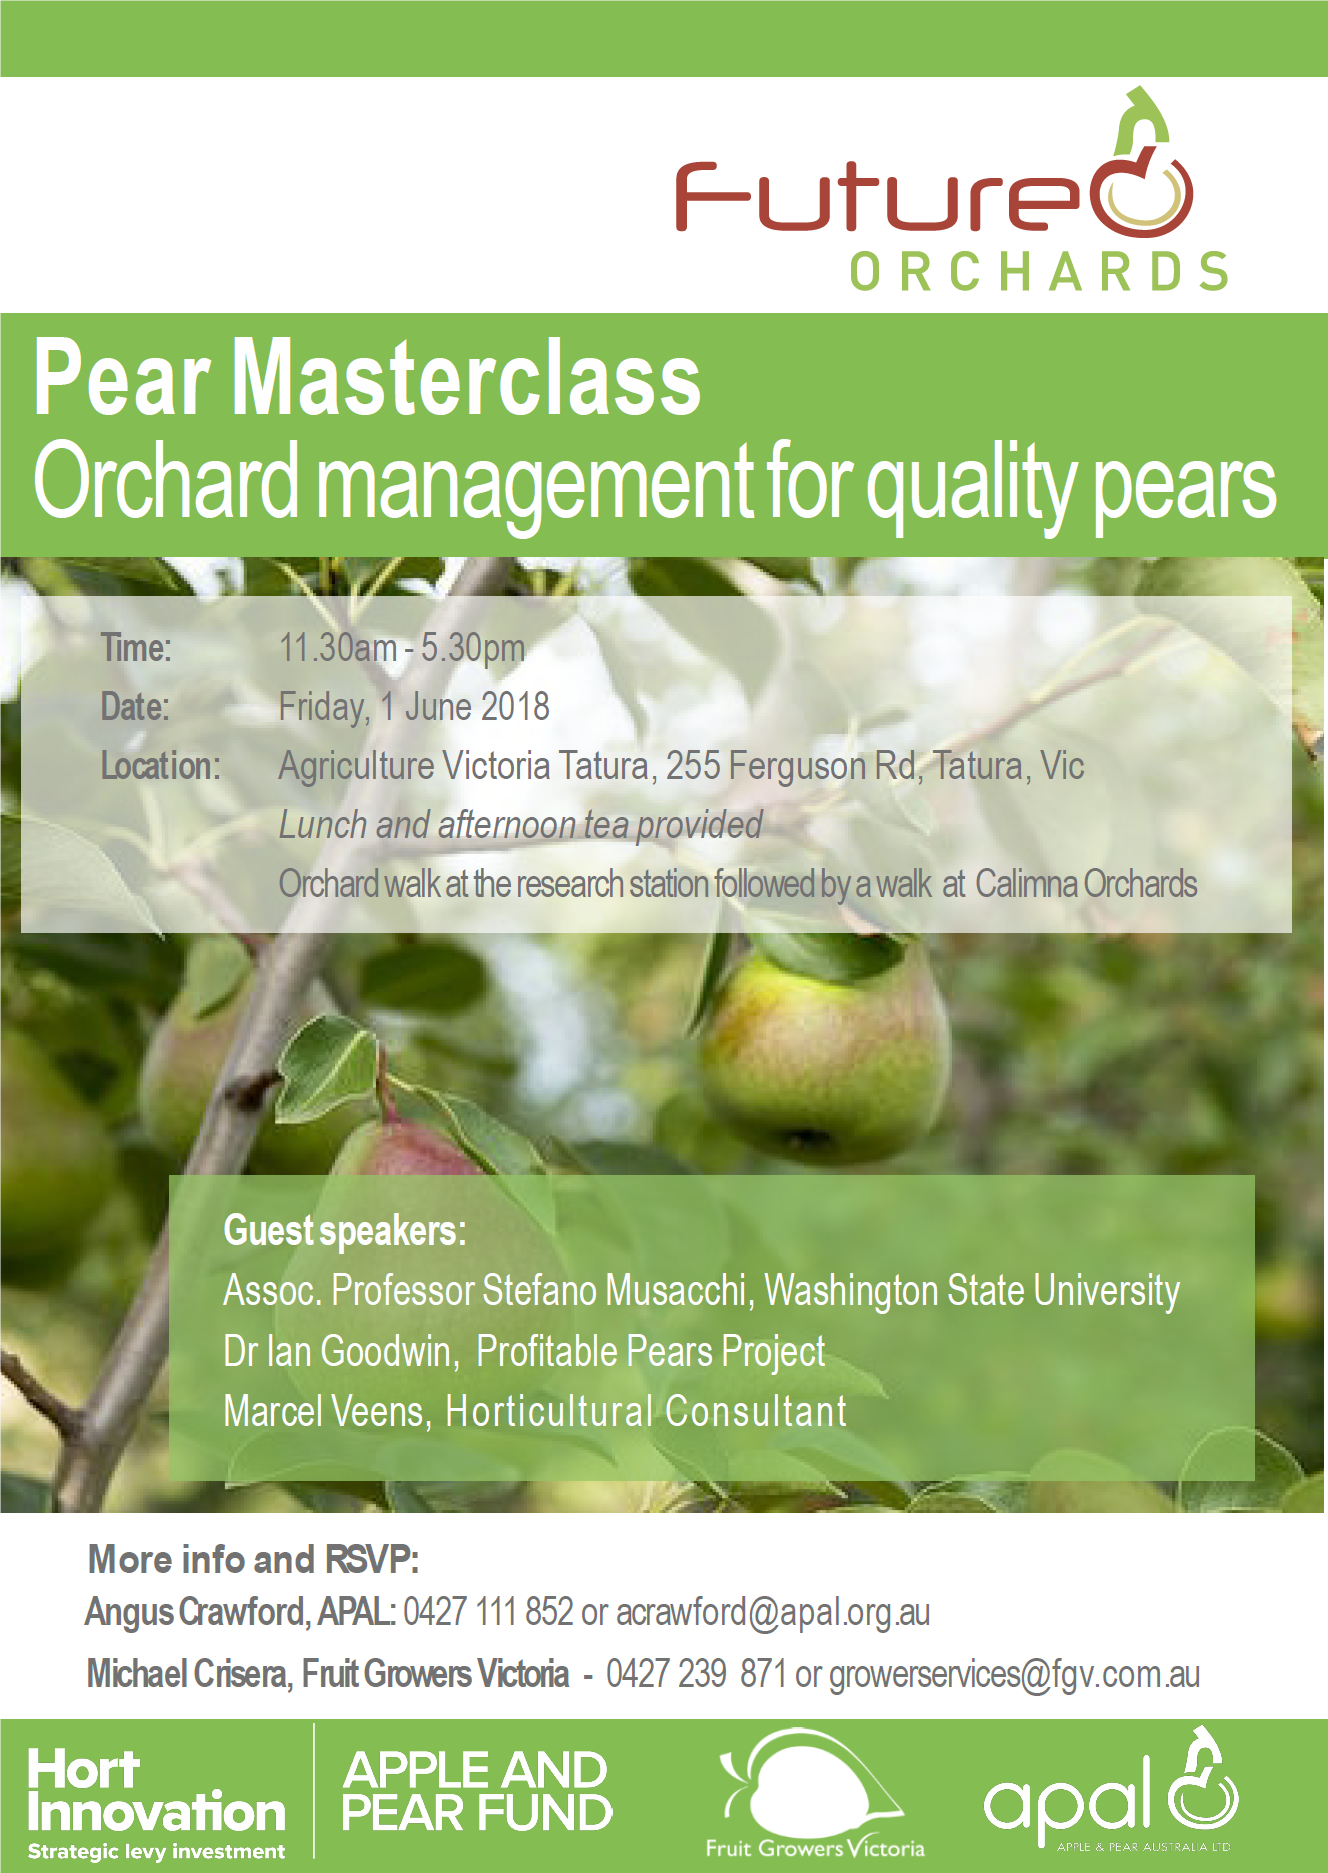 Future Orchards Pear Masterclass